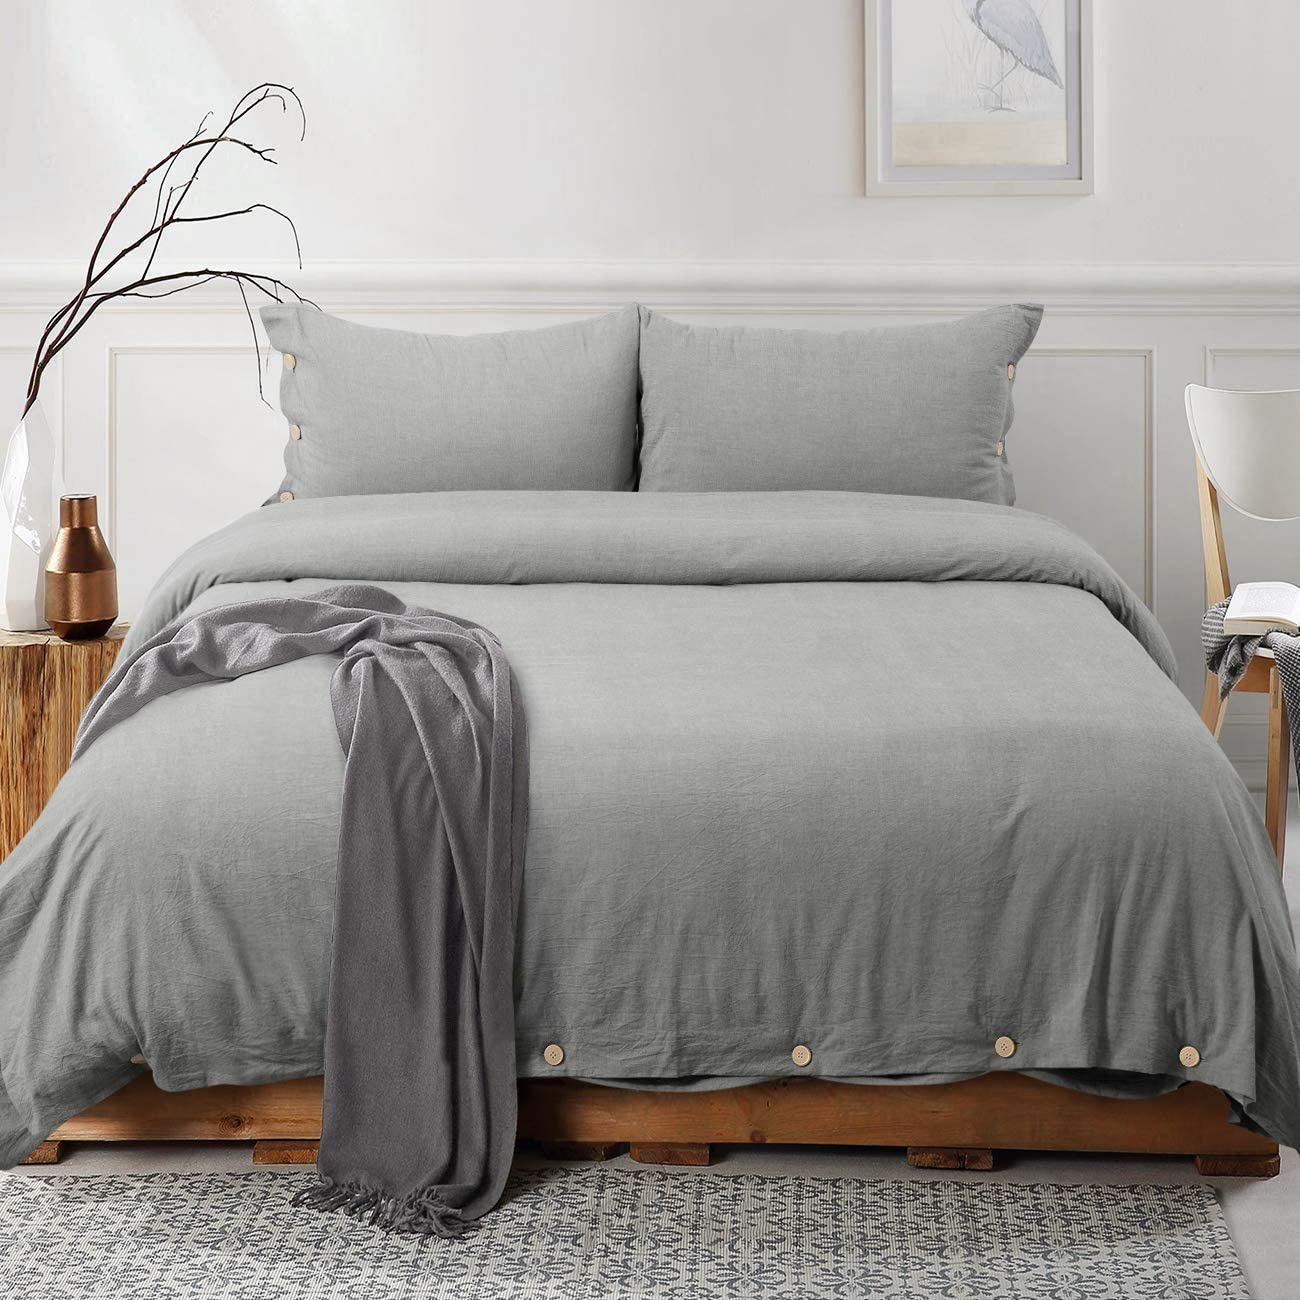 viewstar Grey 100% Washed Cotton Duvet Cover Set,3 Pieces Luxury Soft Bedding Set with Buttons Closure,Breathable,Hypoallergenic,Solid Gray Color Duvet Cover Queen Size(No Comforter)